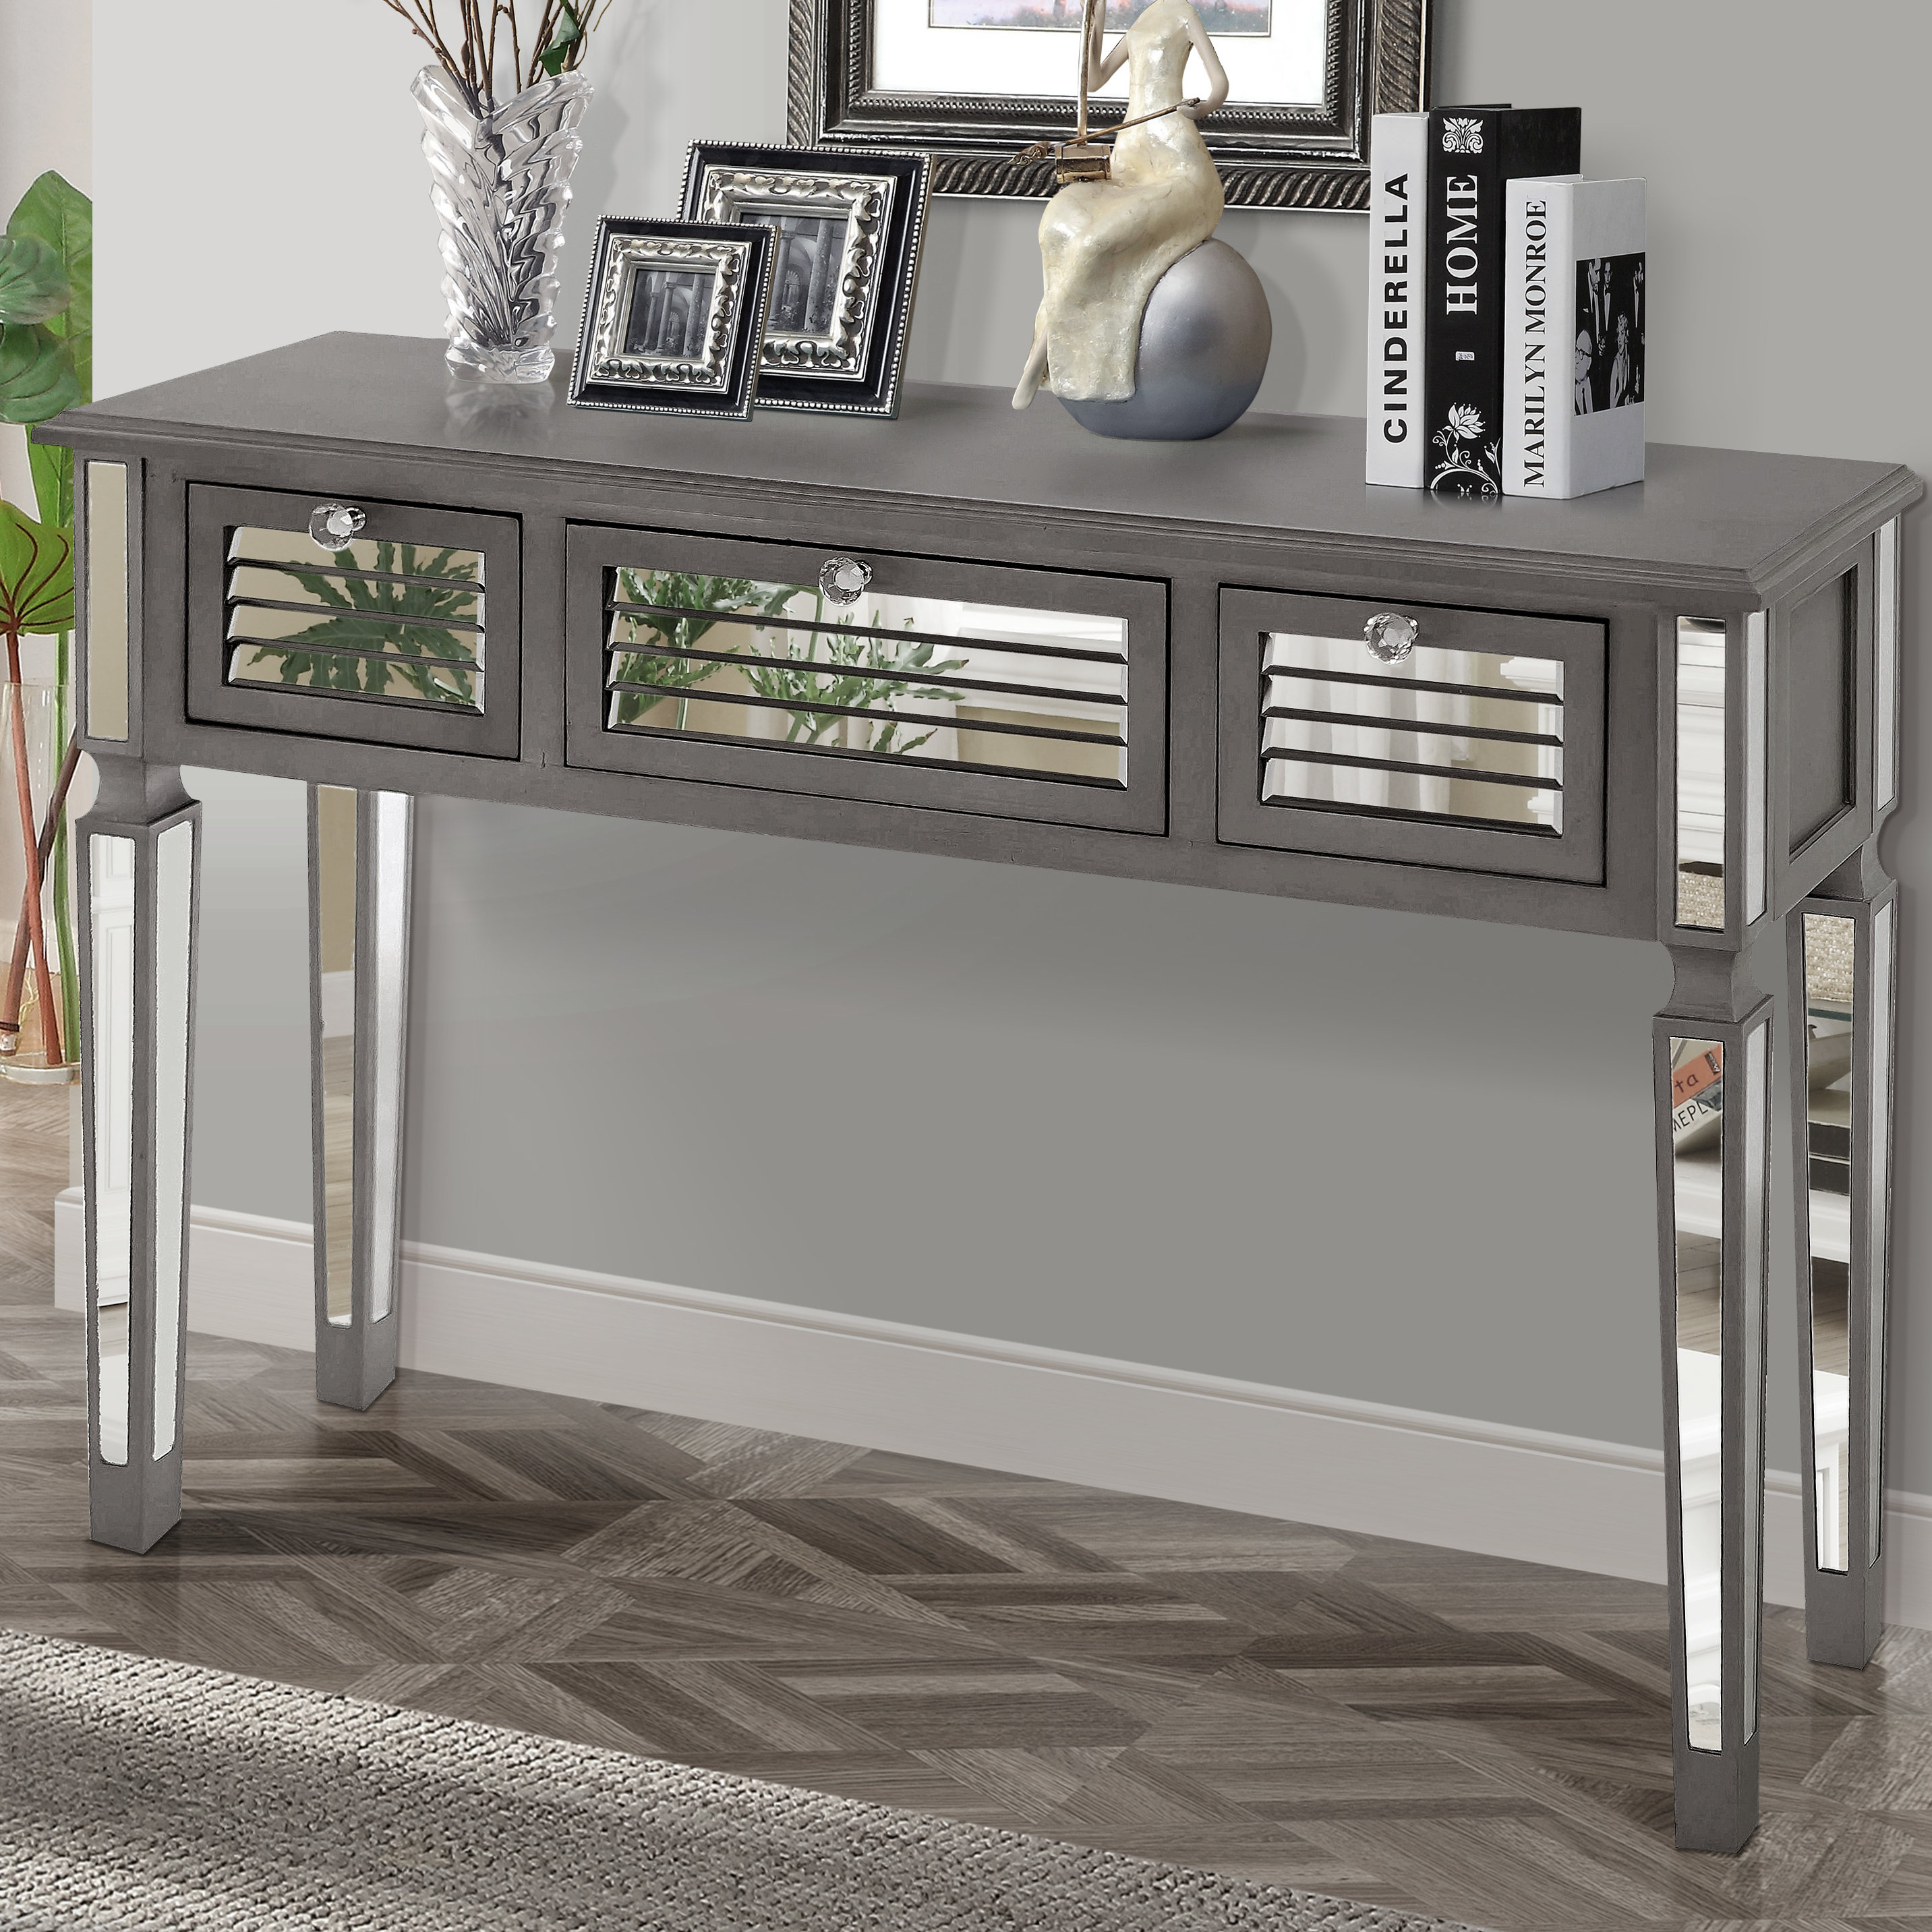 Gallerie Decor Summit Mirrored Console Table & Reviews | Wayfair for Natural Wood Mirrored Media Console Tables (Image 13 of 30)